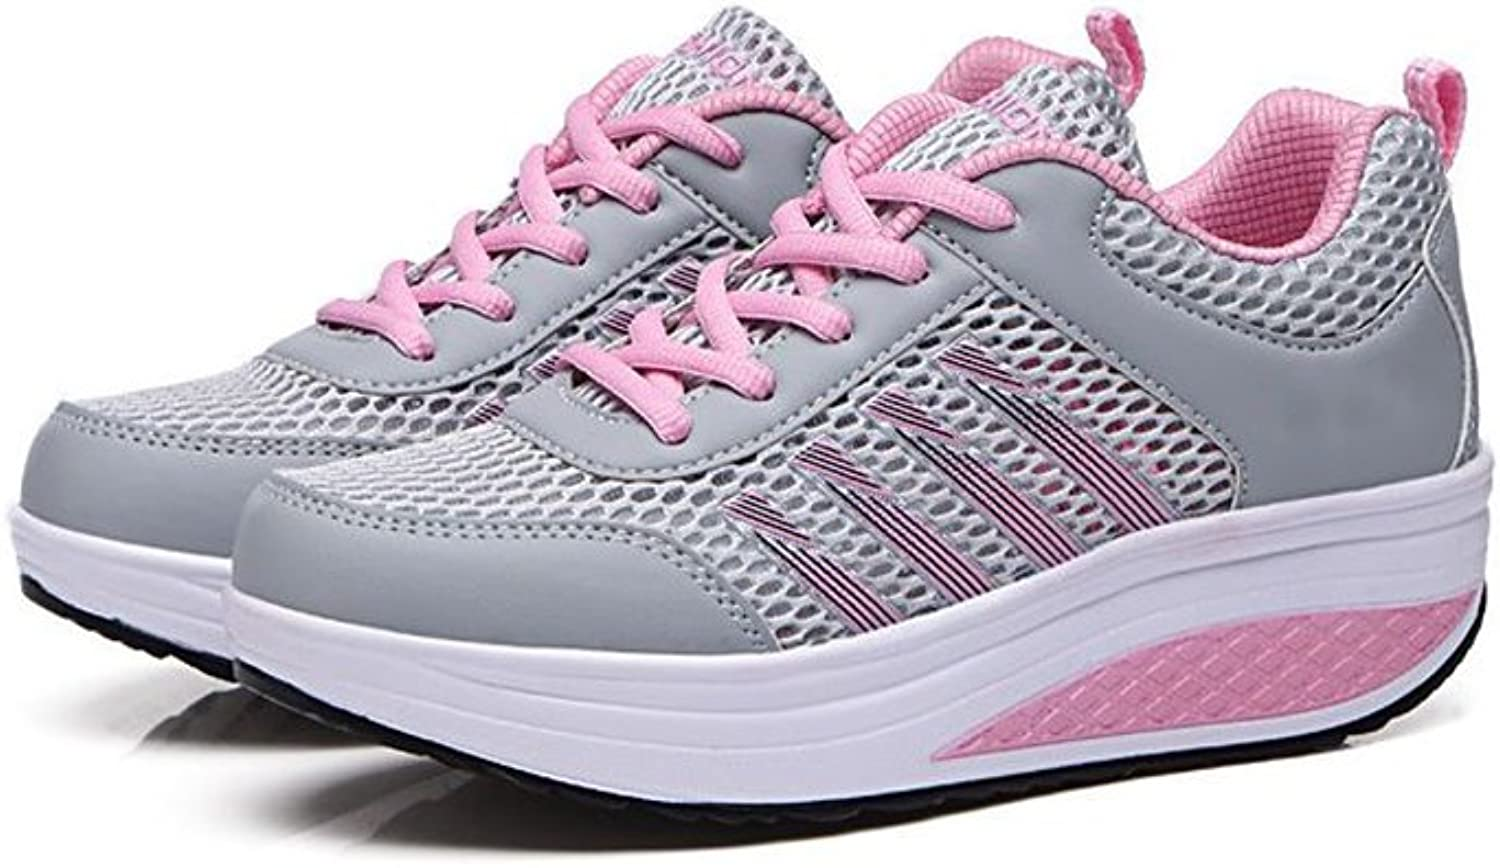 pink town Women's Mesh Wedge Sports shoes Slip On Lightweight Fitness Walking Sneakers